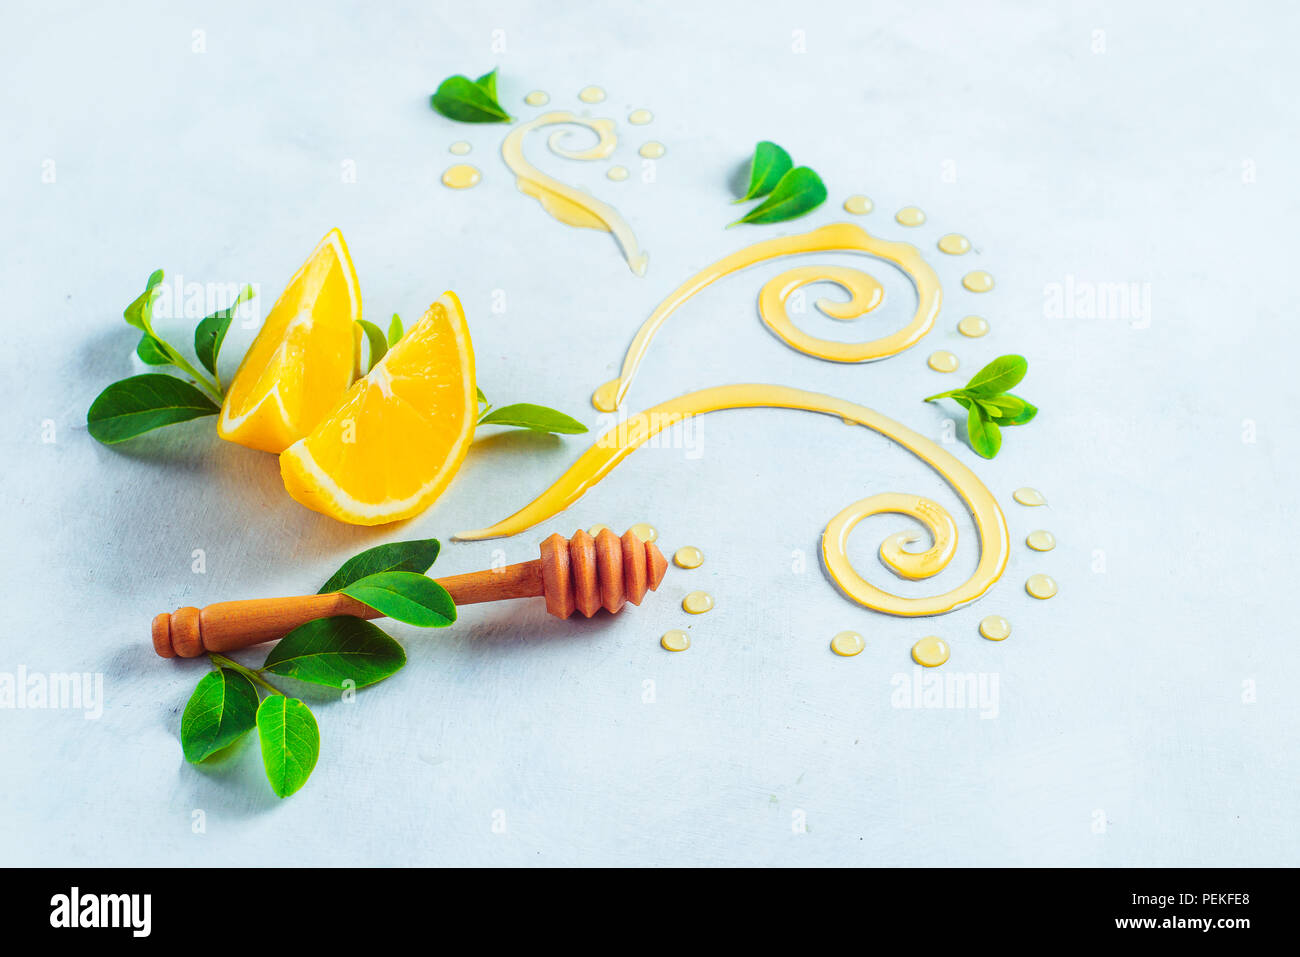 Honey dipper with decorative honey swirls and lemon slices on a white wooden background with copy space. Creative food photography. Painting with food - Stock Image